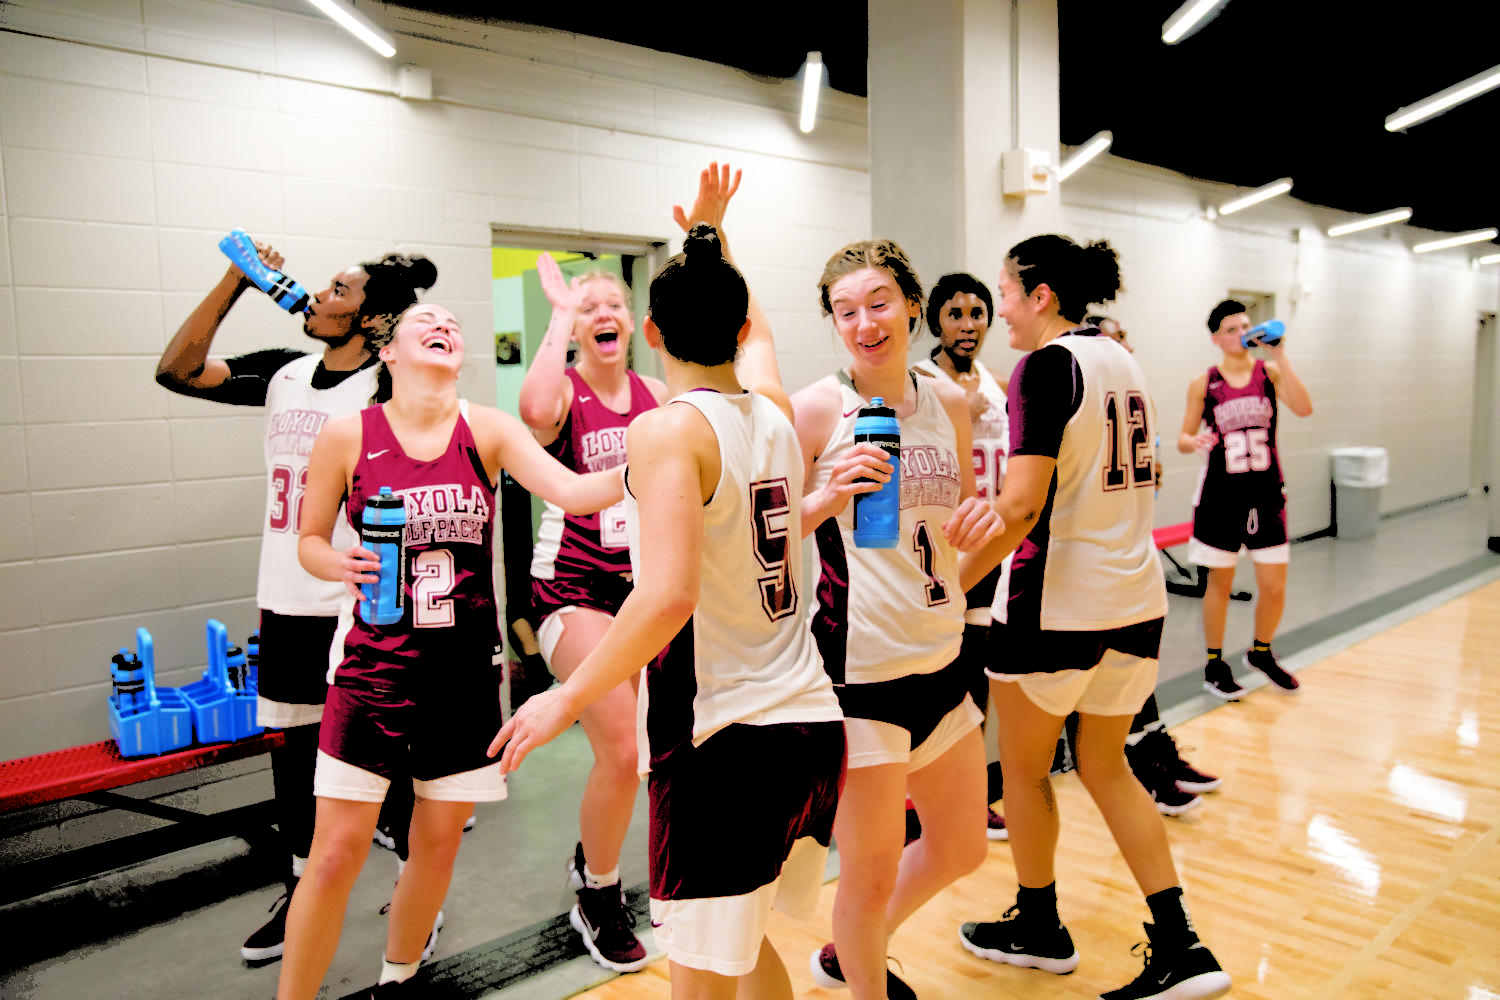 Women's basketball team enjoying a refreshing water break. The practice was held in the Loyola University sports complex on Friday. Photo by Jules Santos. Photo credit: Jules Santos